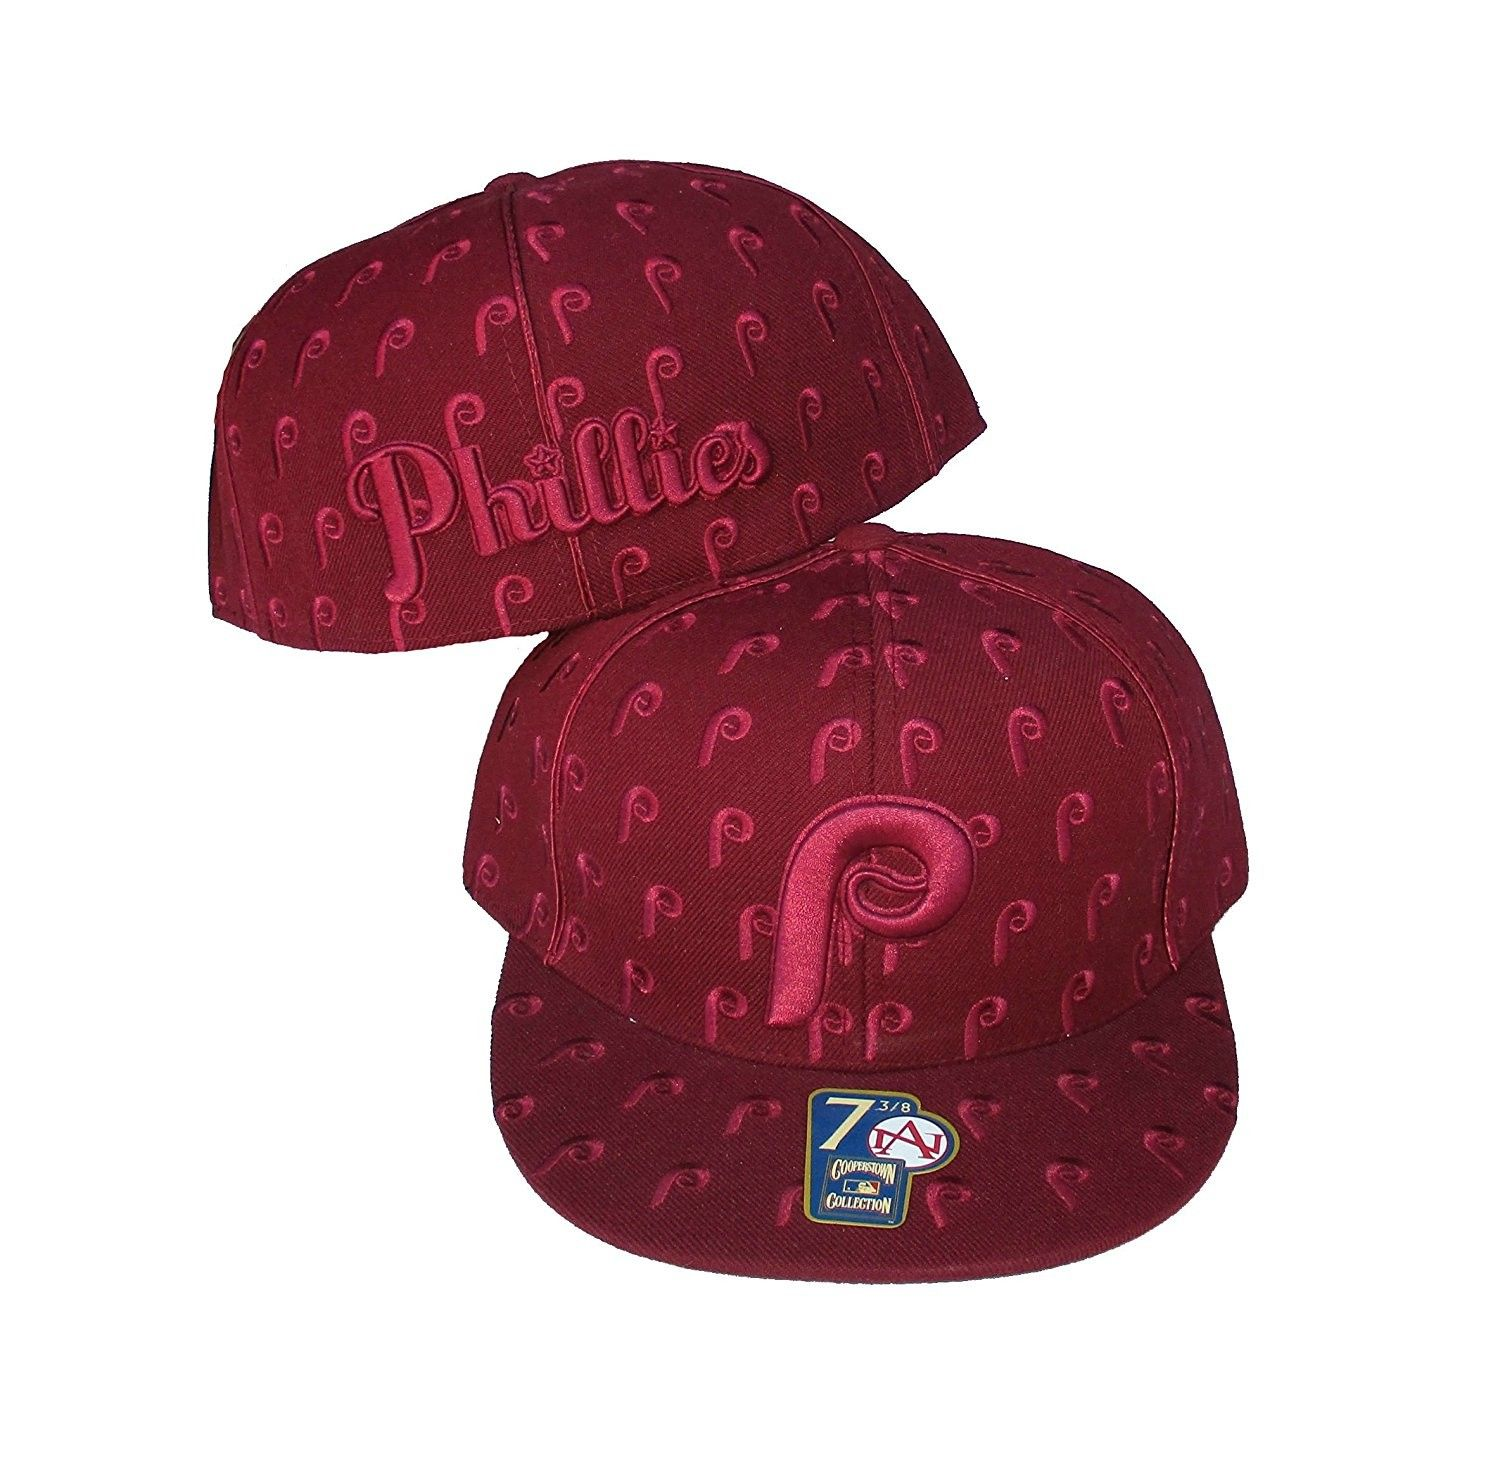 Philadelphia Phillies DICE Fitted Size 8 Cooperstown Collection Hat Cap  Burgandy - CW183N9CUG4-Hats   Caps 1a29a8742bc1